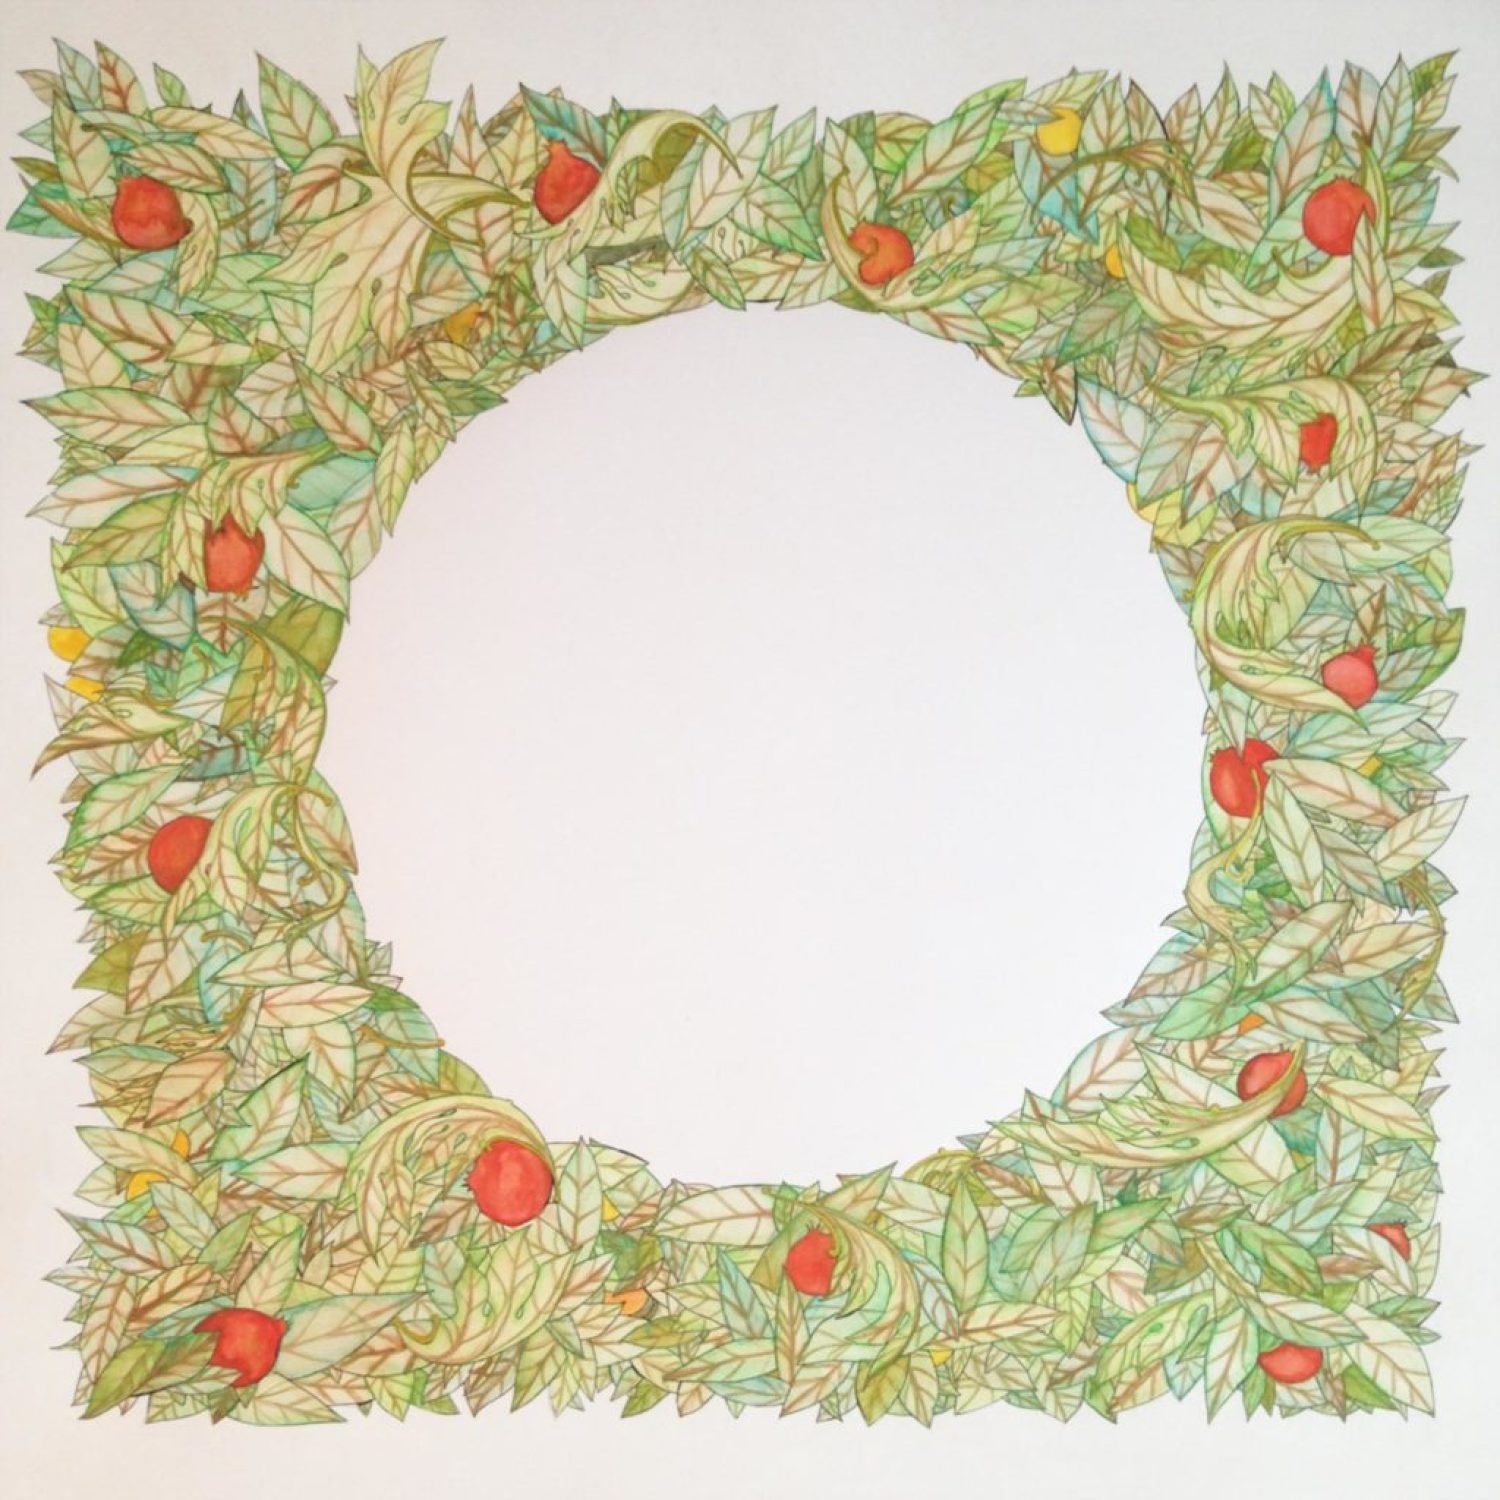 A wreath of acanthus and bay leaves, pomegranates, and lemons, create a fruitful harvest frame for wedding vows...